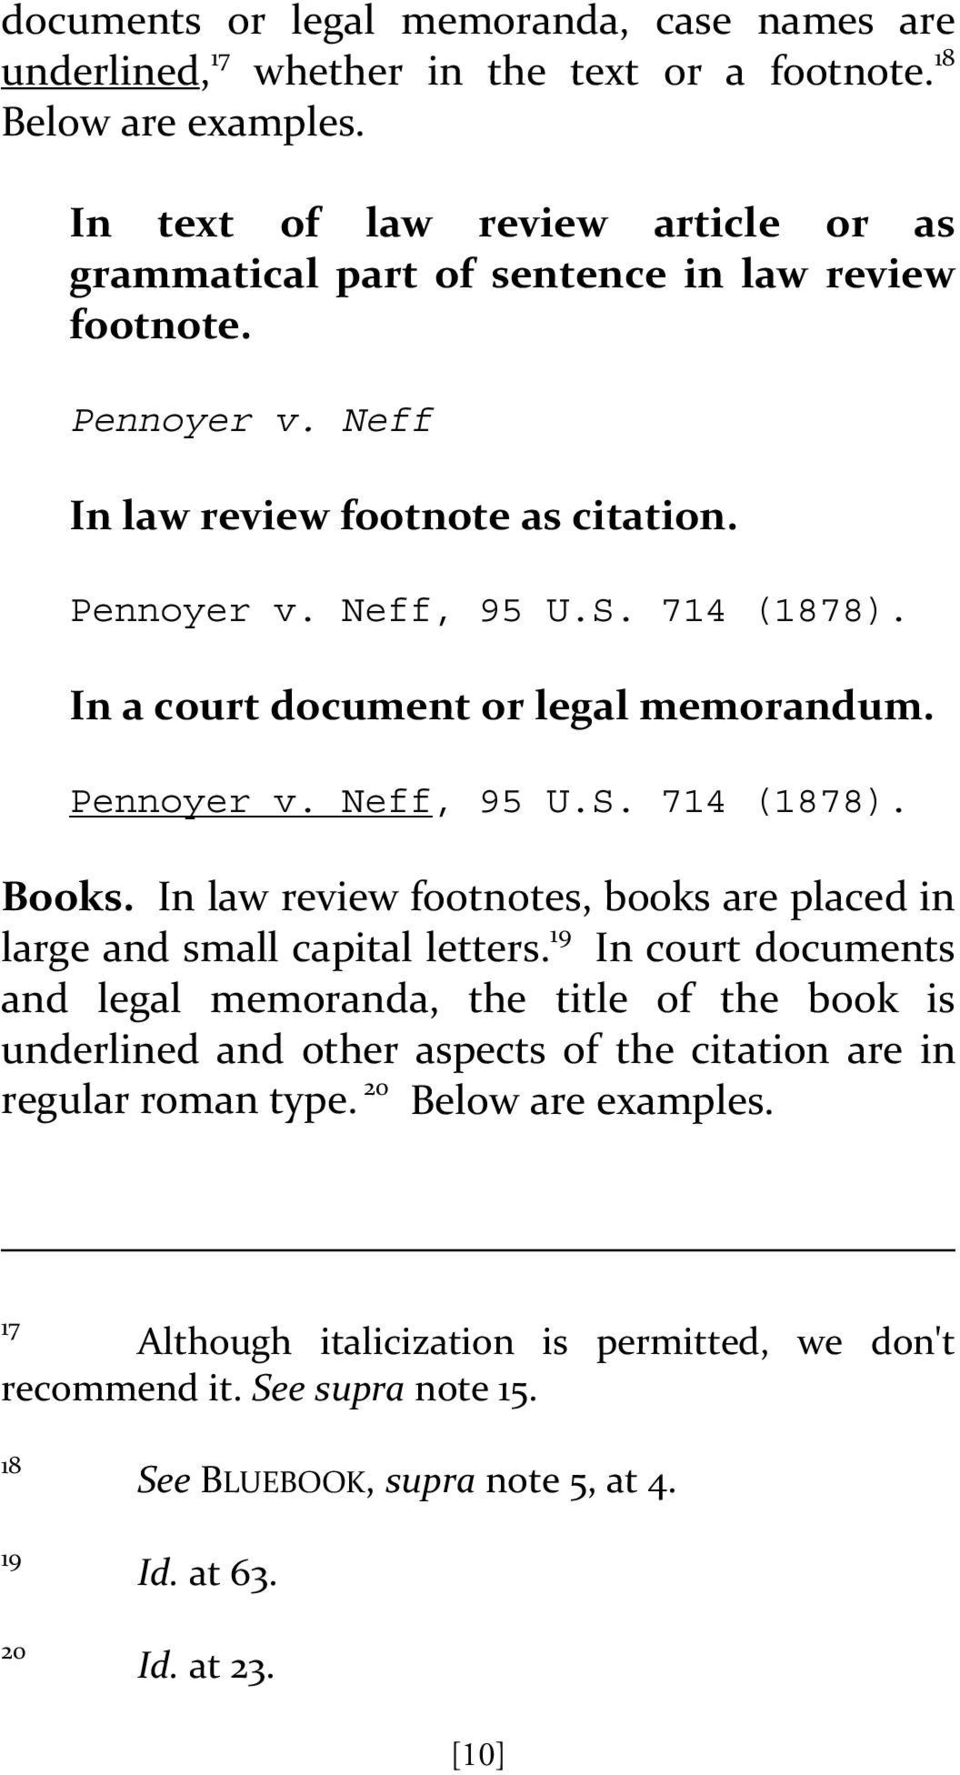 In a court document or legal memorandum. Pennoyer v. Neff, 95 U.S. 714 (1878). Books. In law review footnotes, books are placed in large and small capital letters.